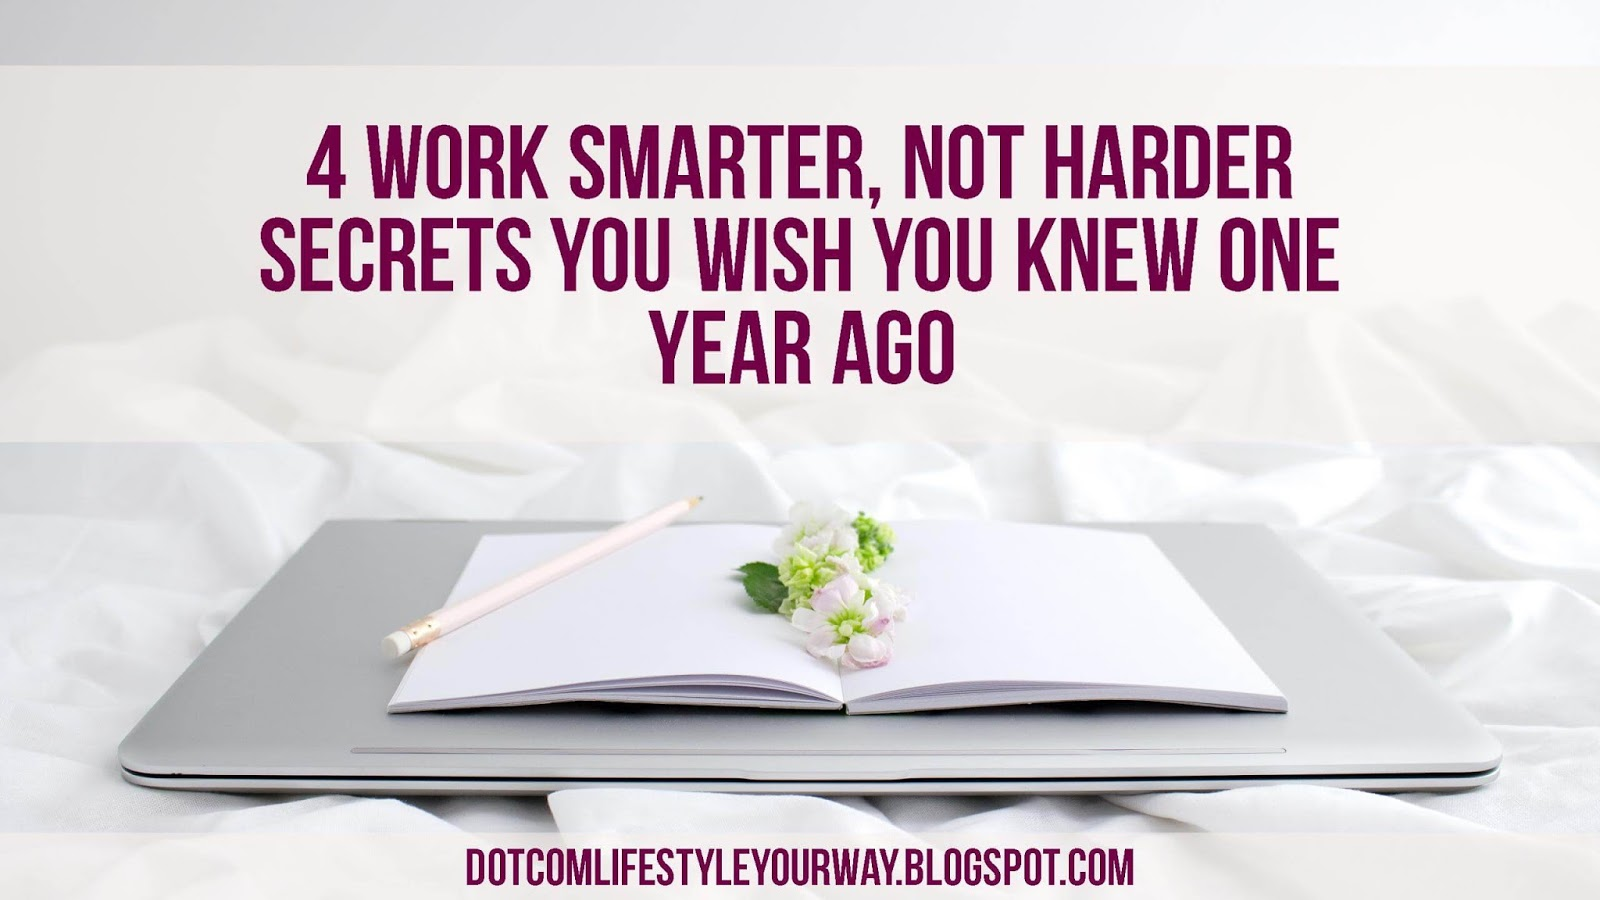 Multitasking, productivity and efficiency are skills we need to be progressive bloggers.Check out these 4 Work Smarter, not Harder Secrets You Wish You Knew One Year Ago and learn how to work smarter, not harder with these easy hacks.